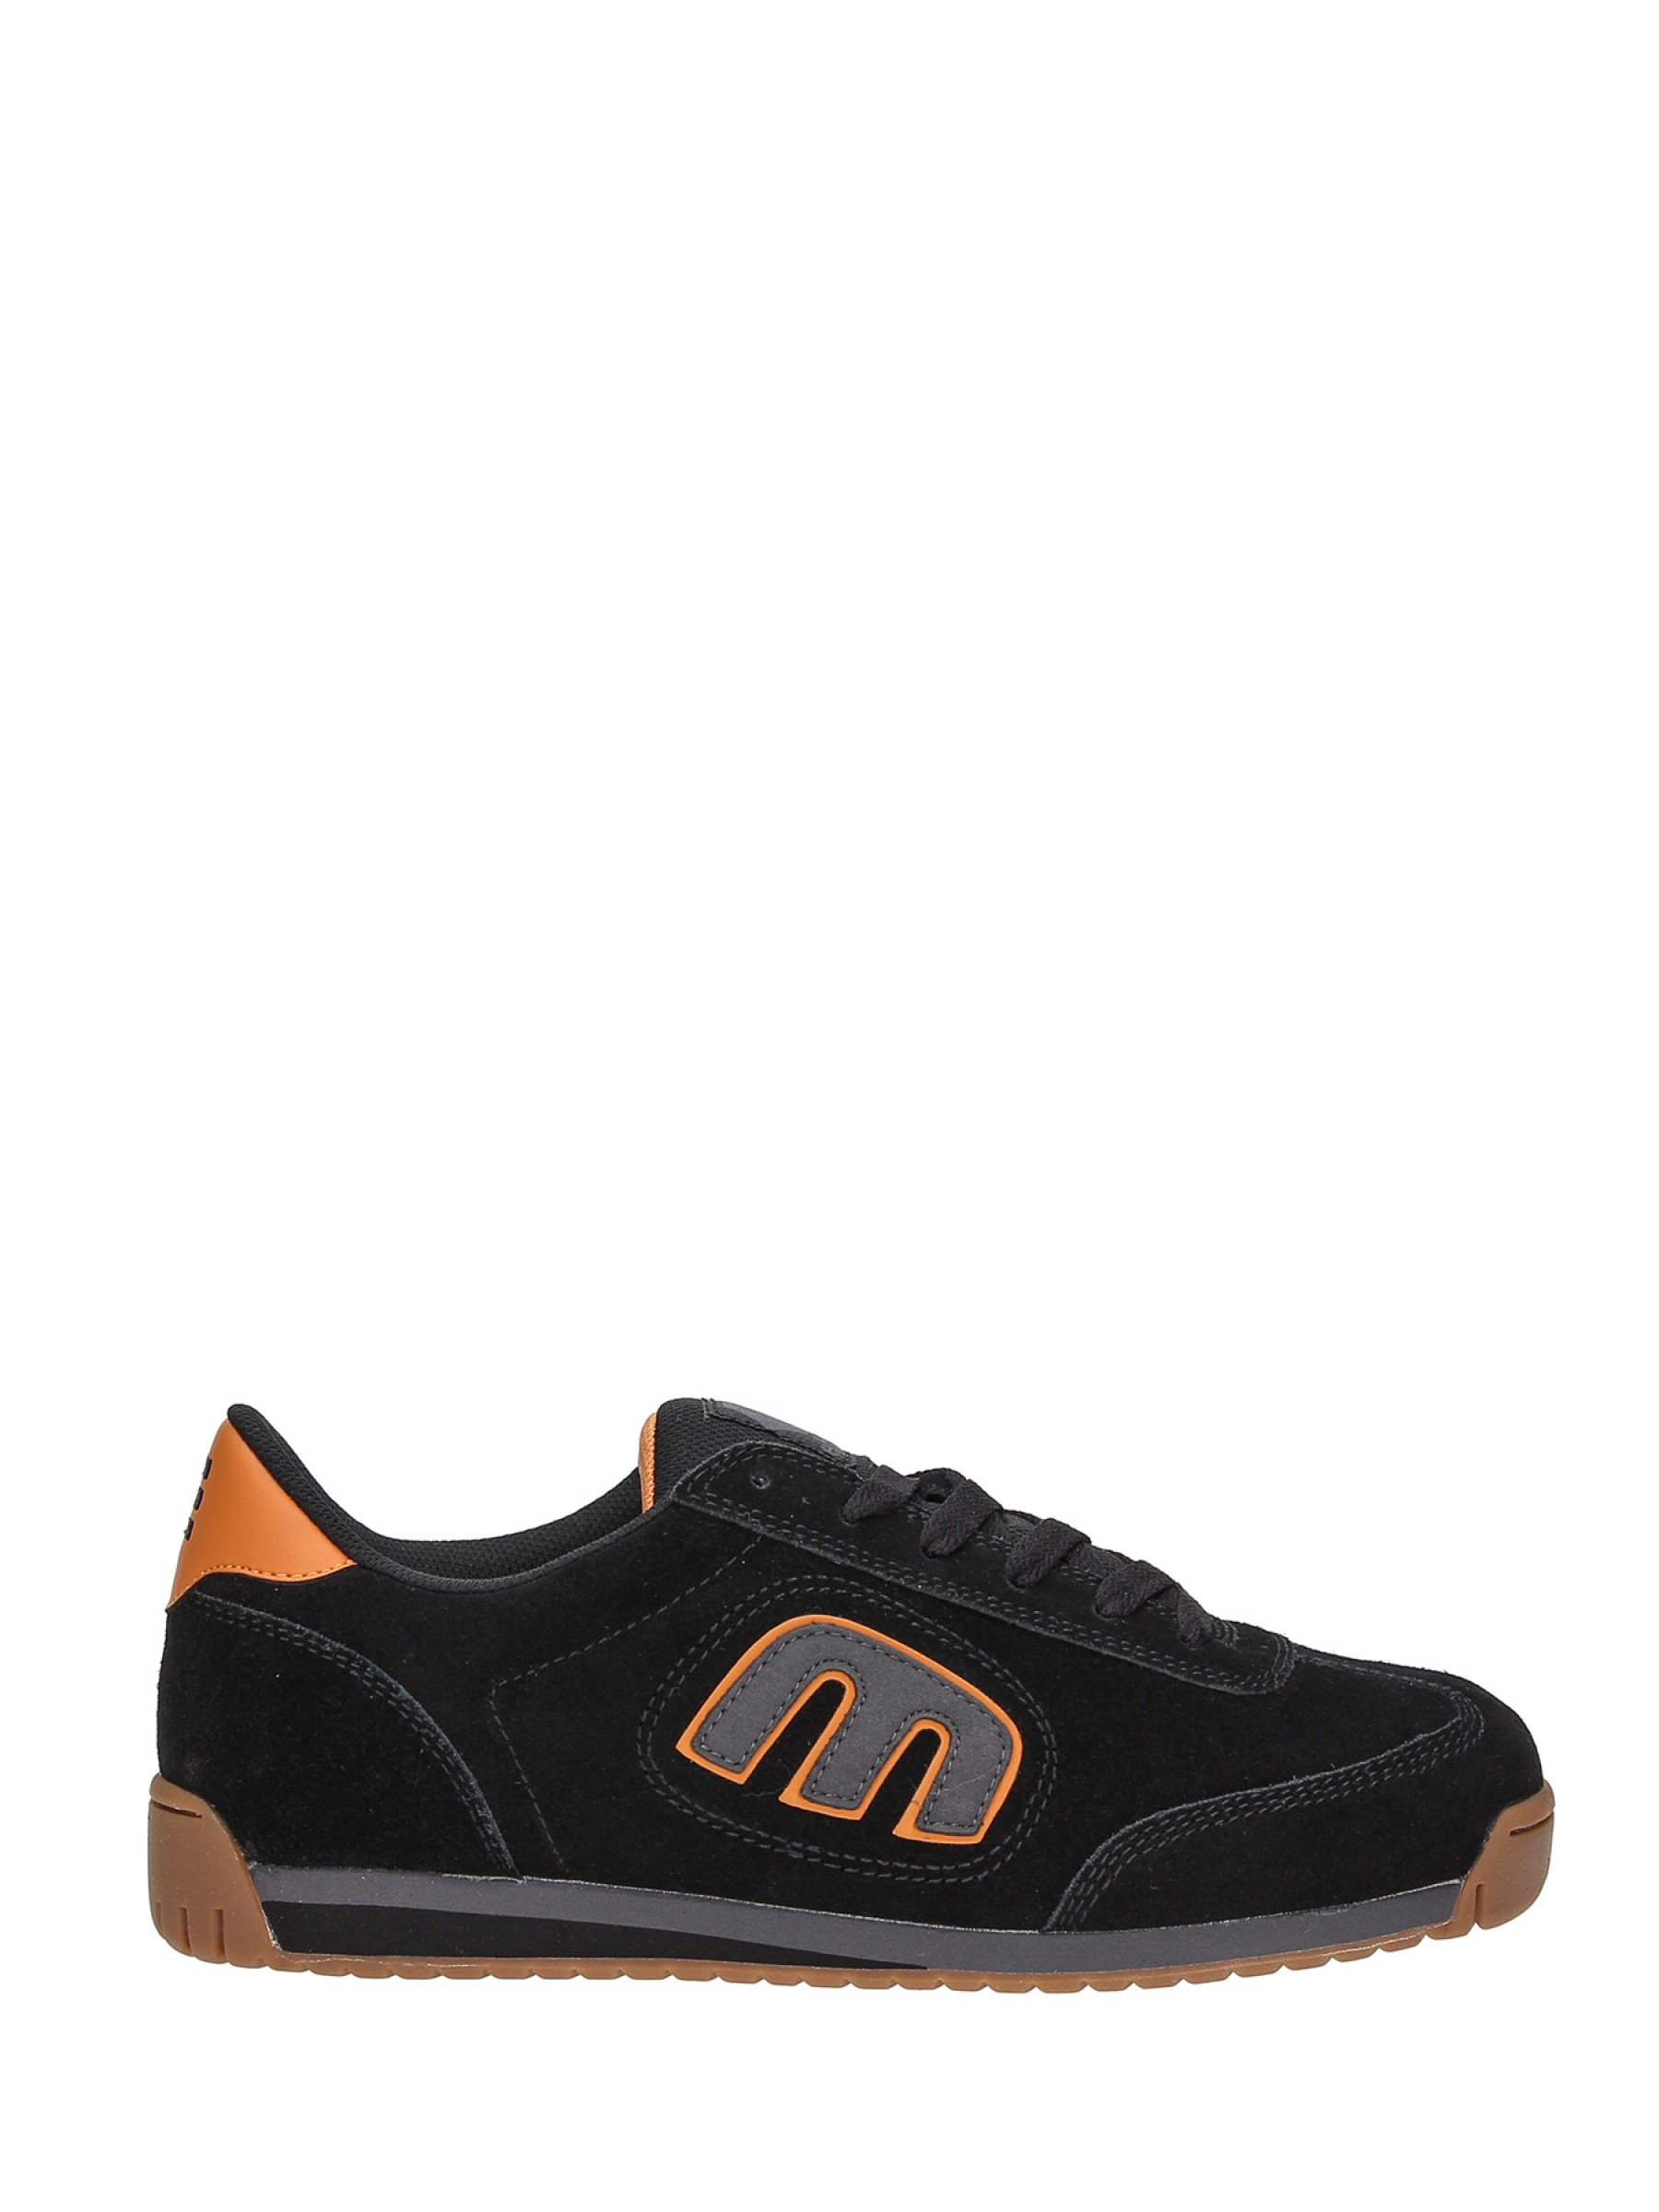 low priced bf204 9d97a Scarpe Skate Unisex Lo Cut 2